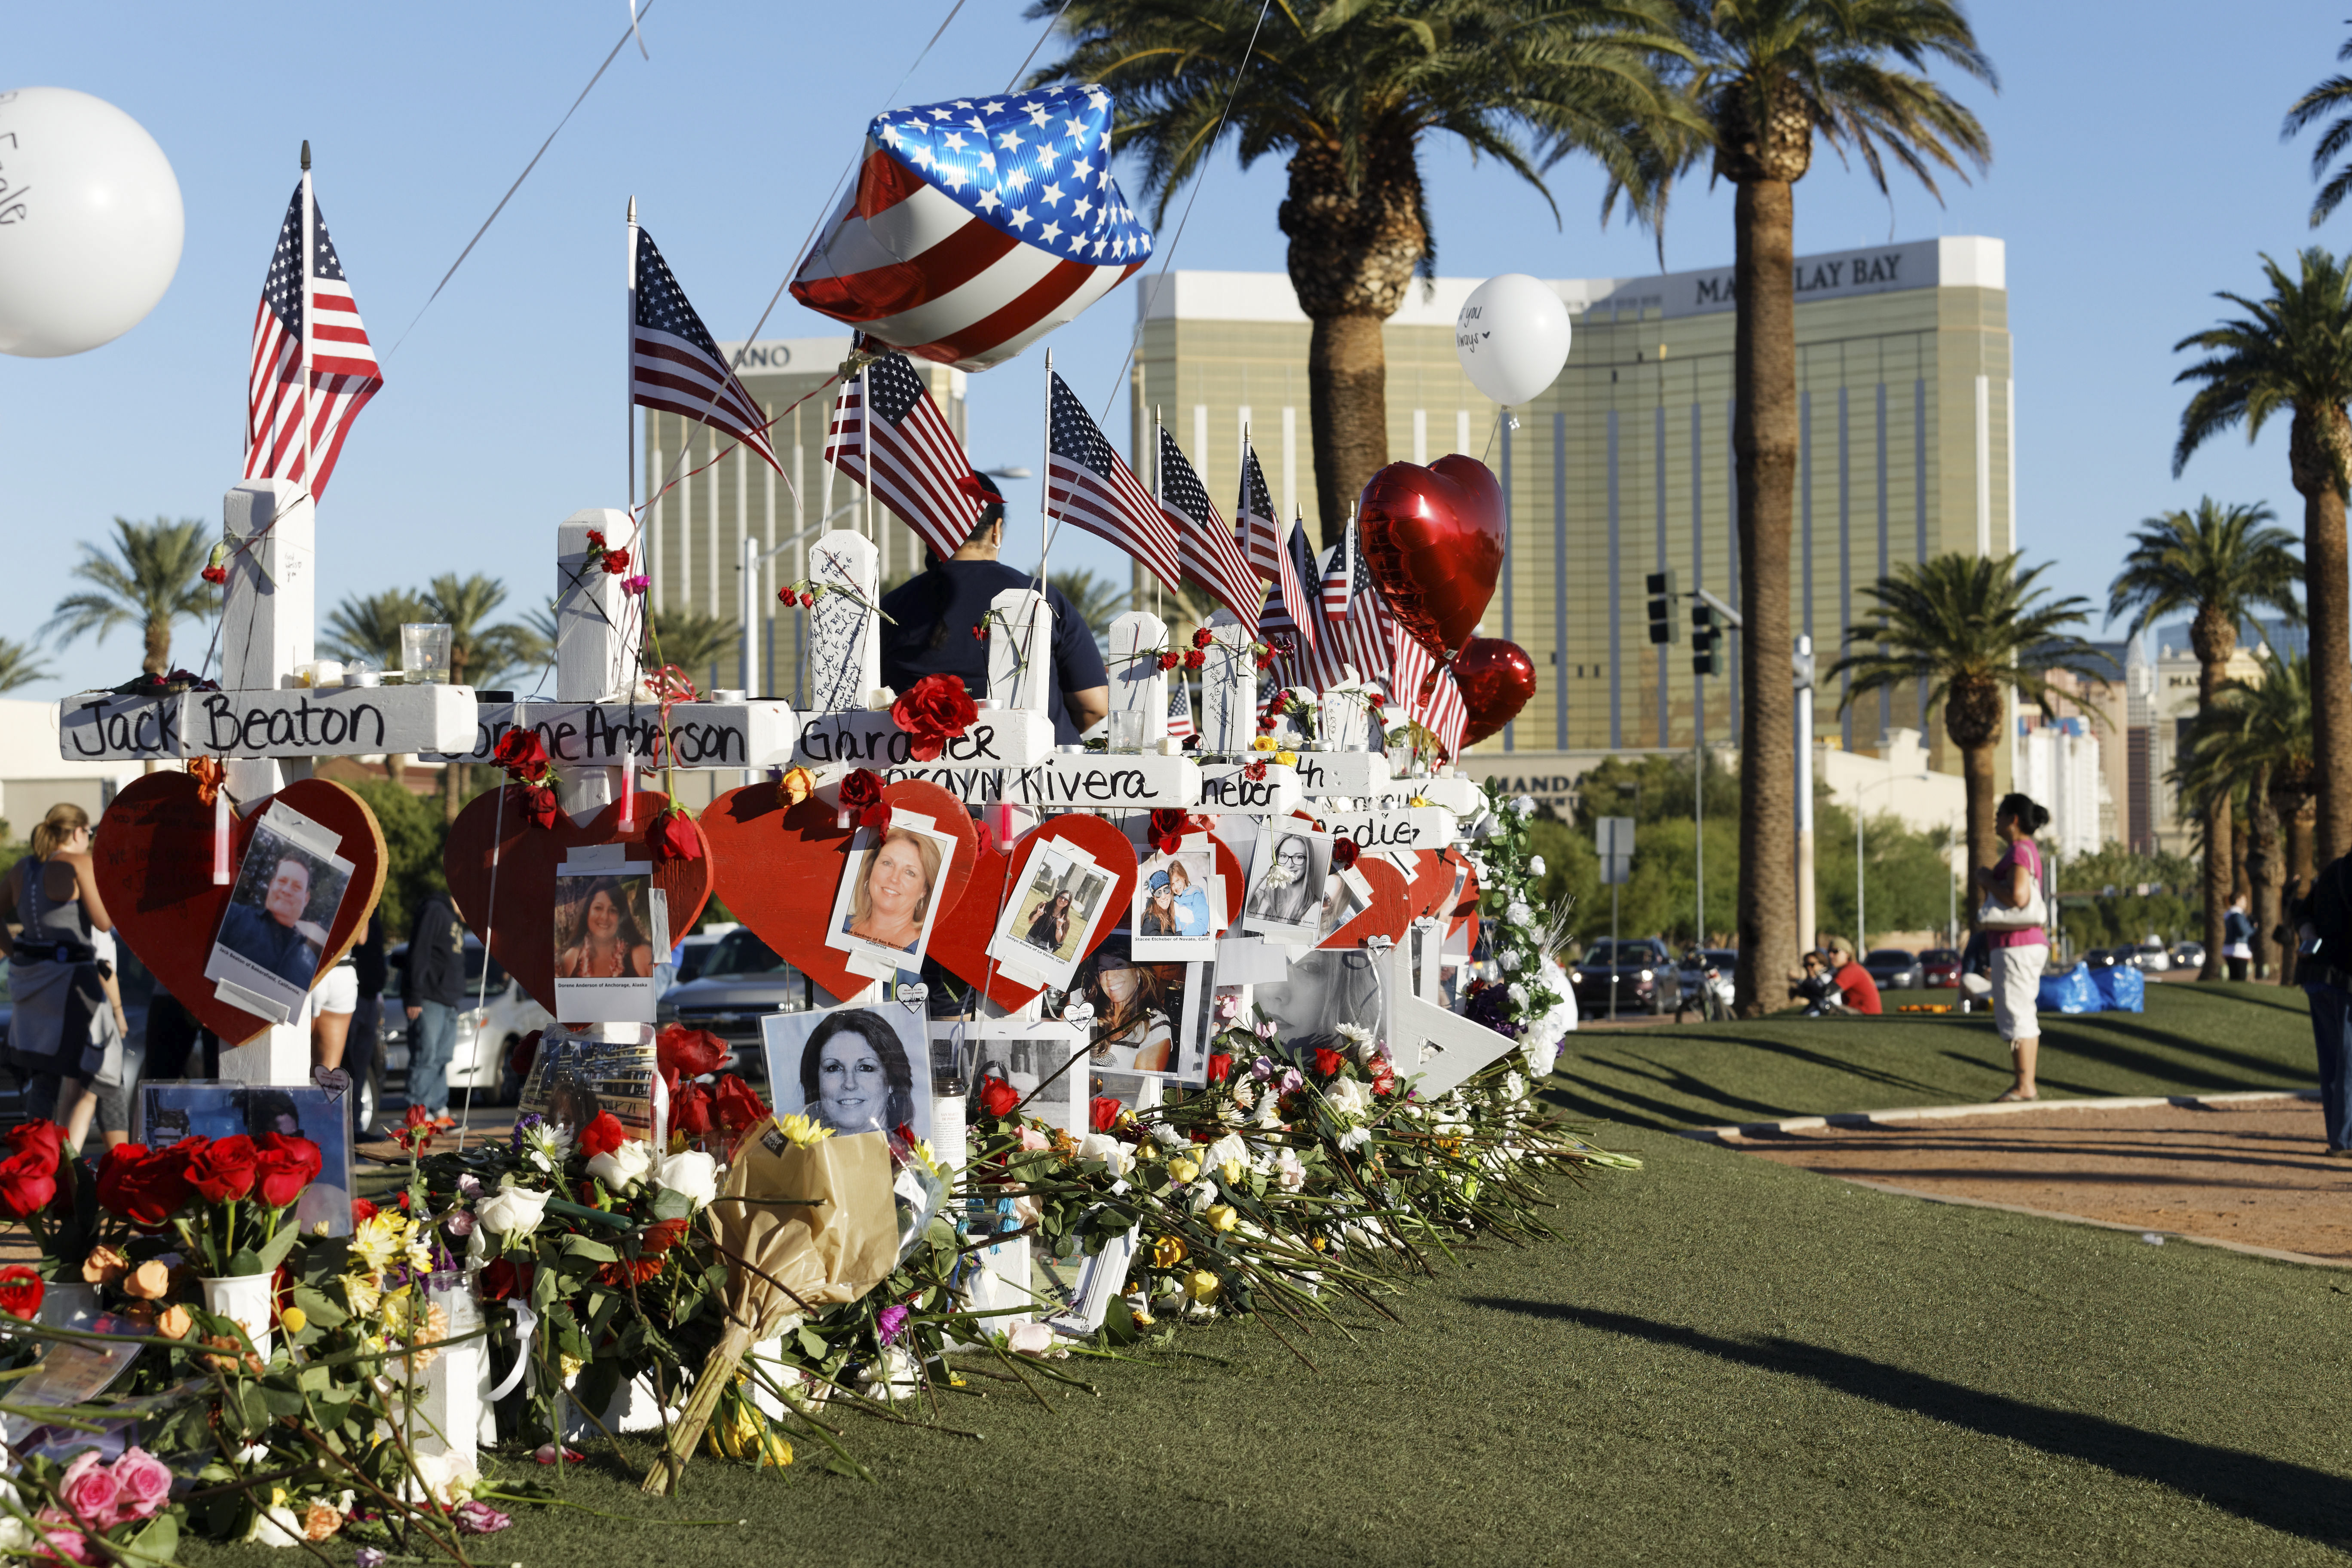 A number of Las Vegas hotels have changed their policies following the shooting last year. Credit: PA